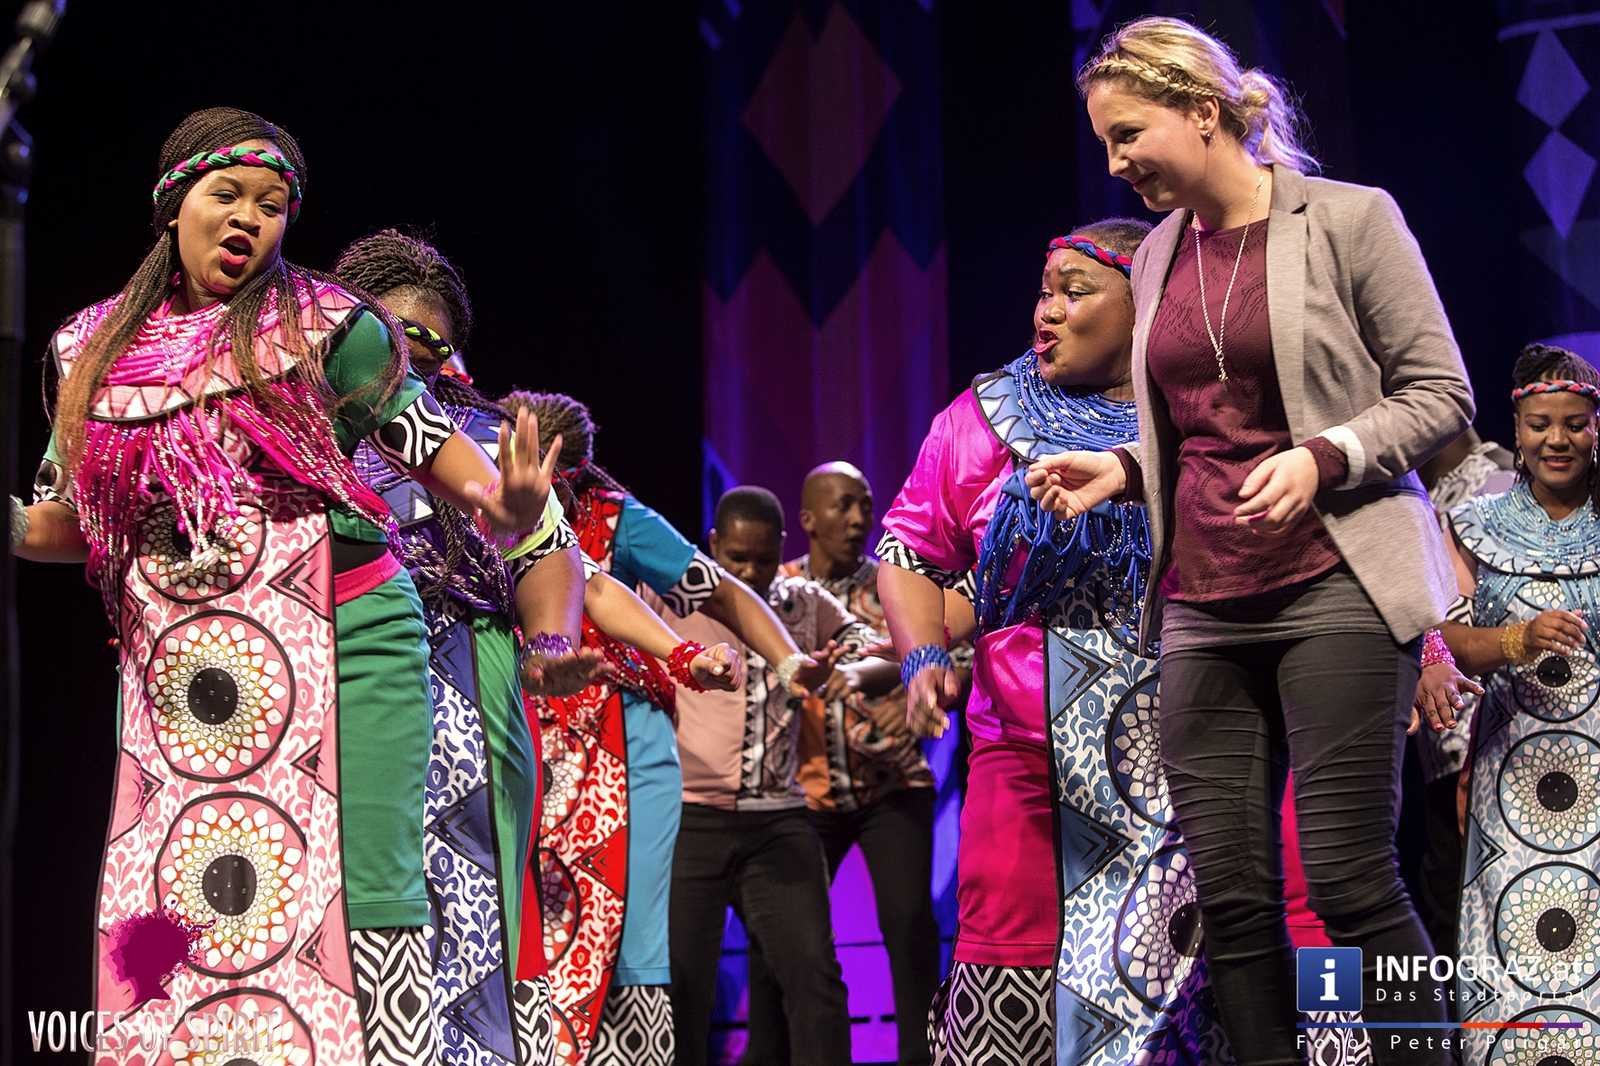 soweto gospel choir internationales chorfestival statdthalle graz voices of spirit eroeffnung festivals 2016 122